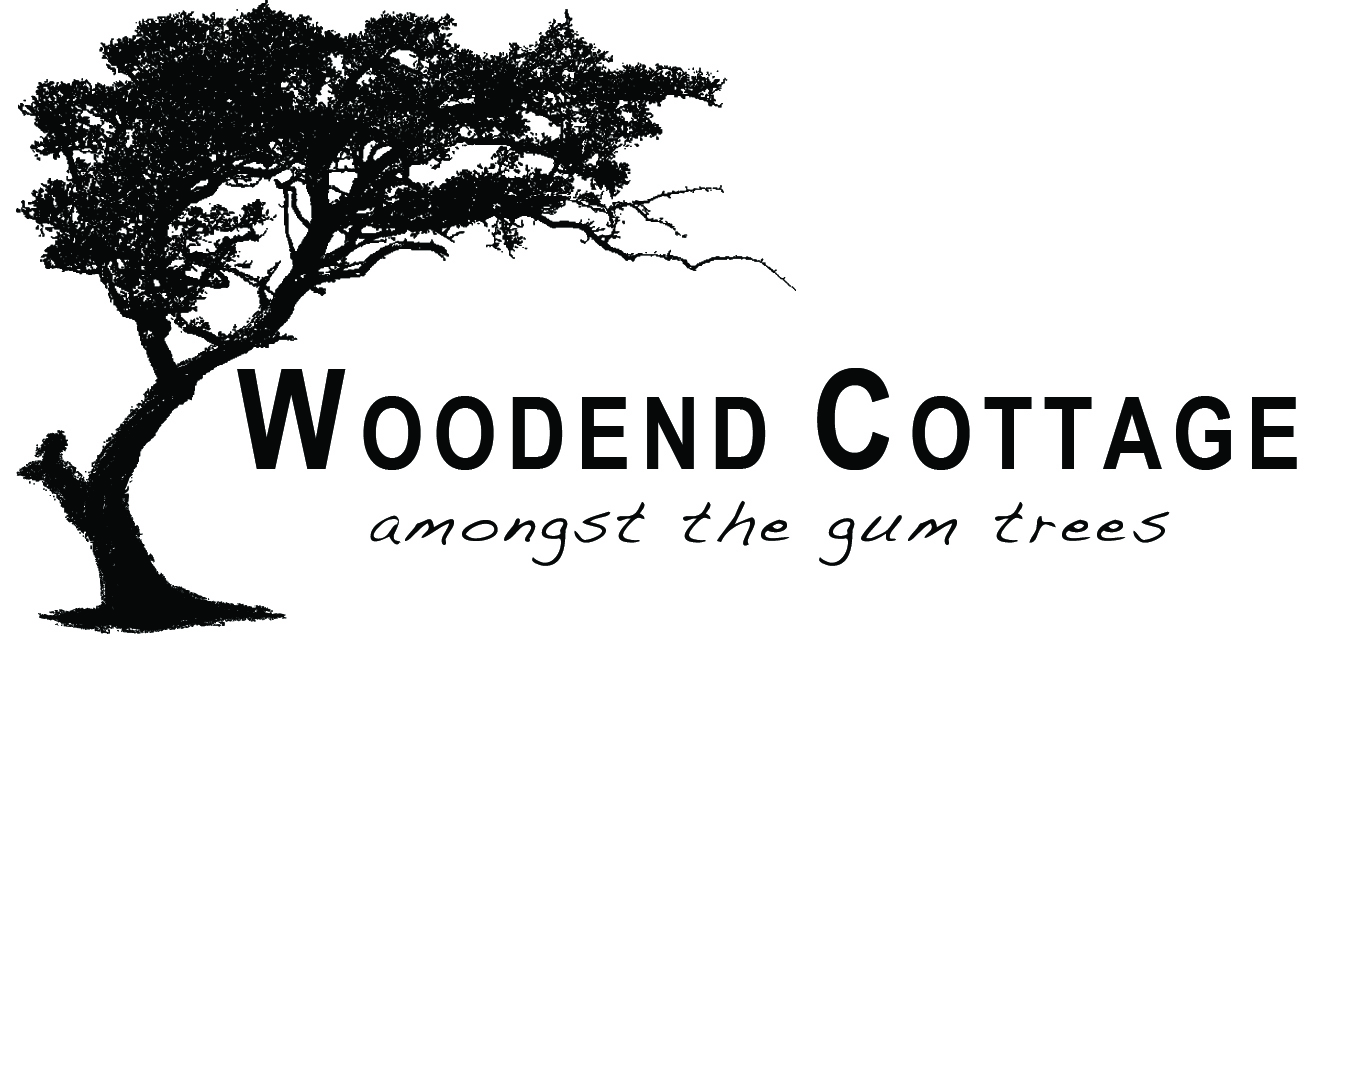 Woodend Cottage Logo and Images